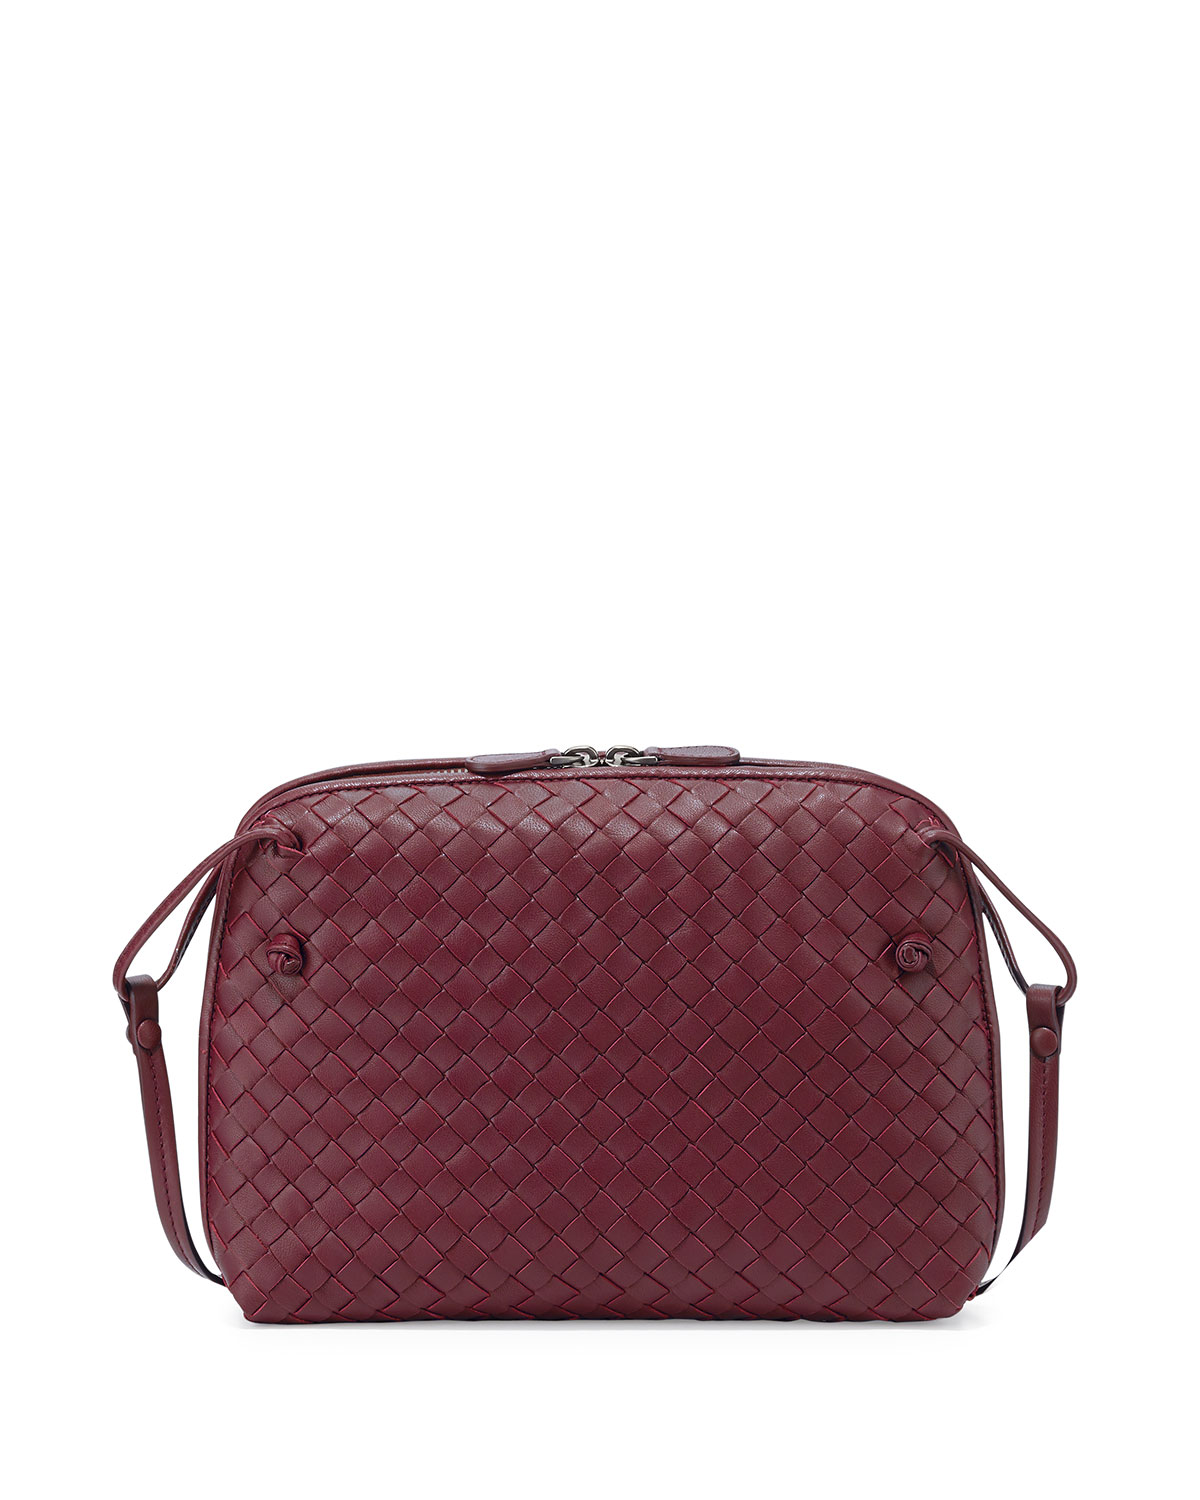 cc288b5f2586 Bottega Veneta Nodini Messenger Bag